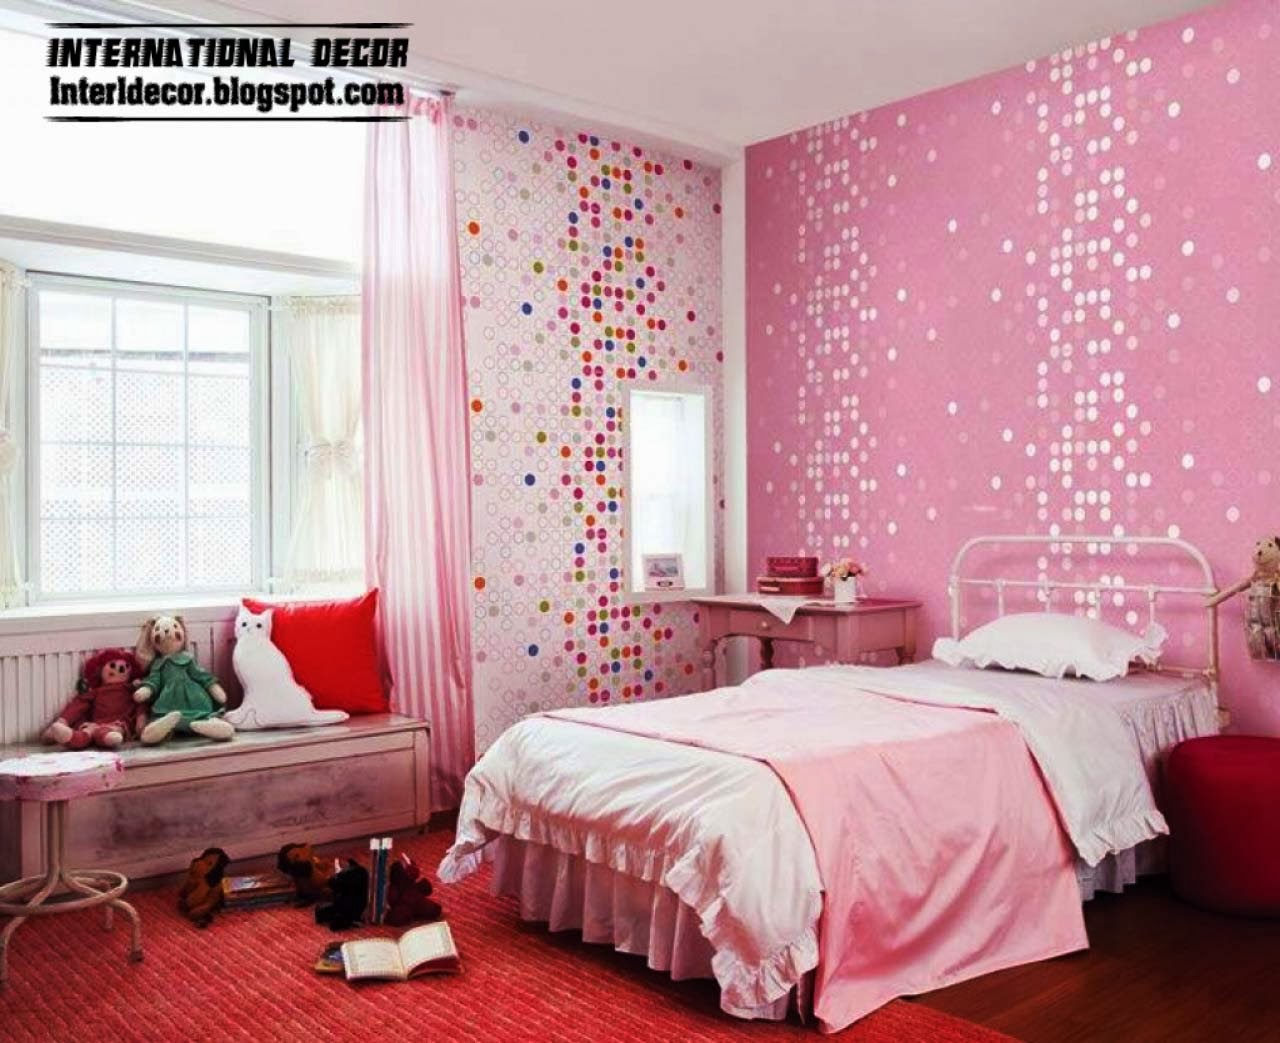 Interior design 2014 15 pink girl 39 s bedroom 2014 for Female bedroom ideas